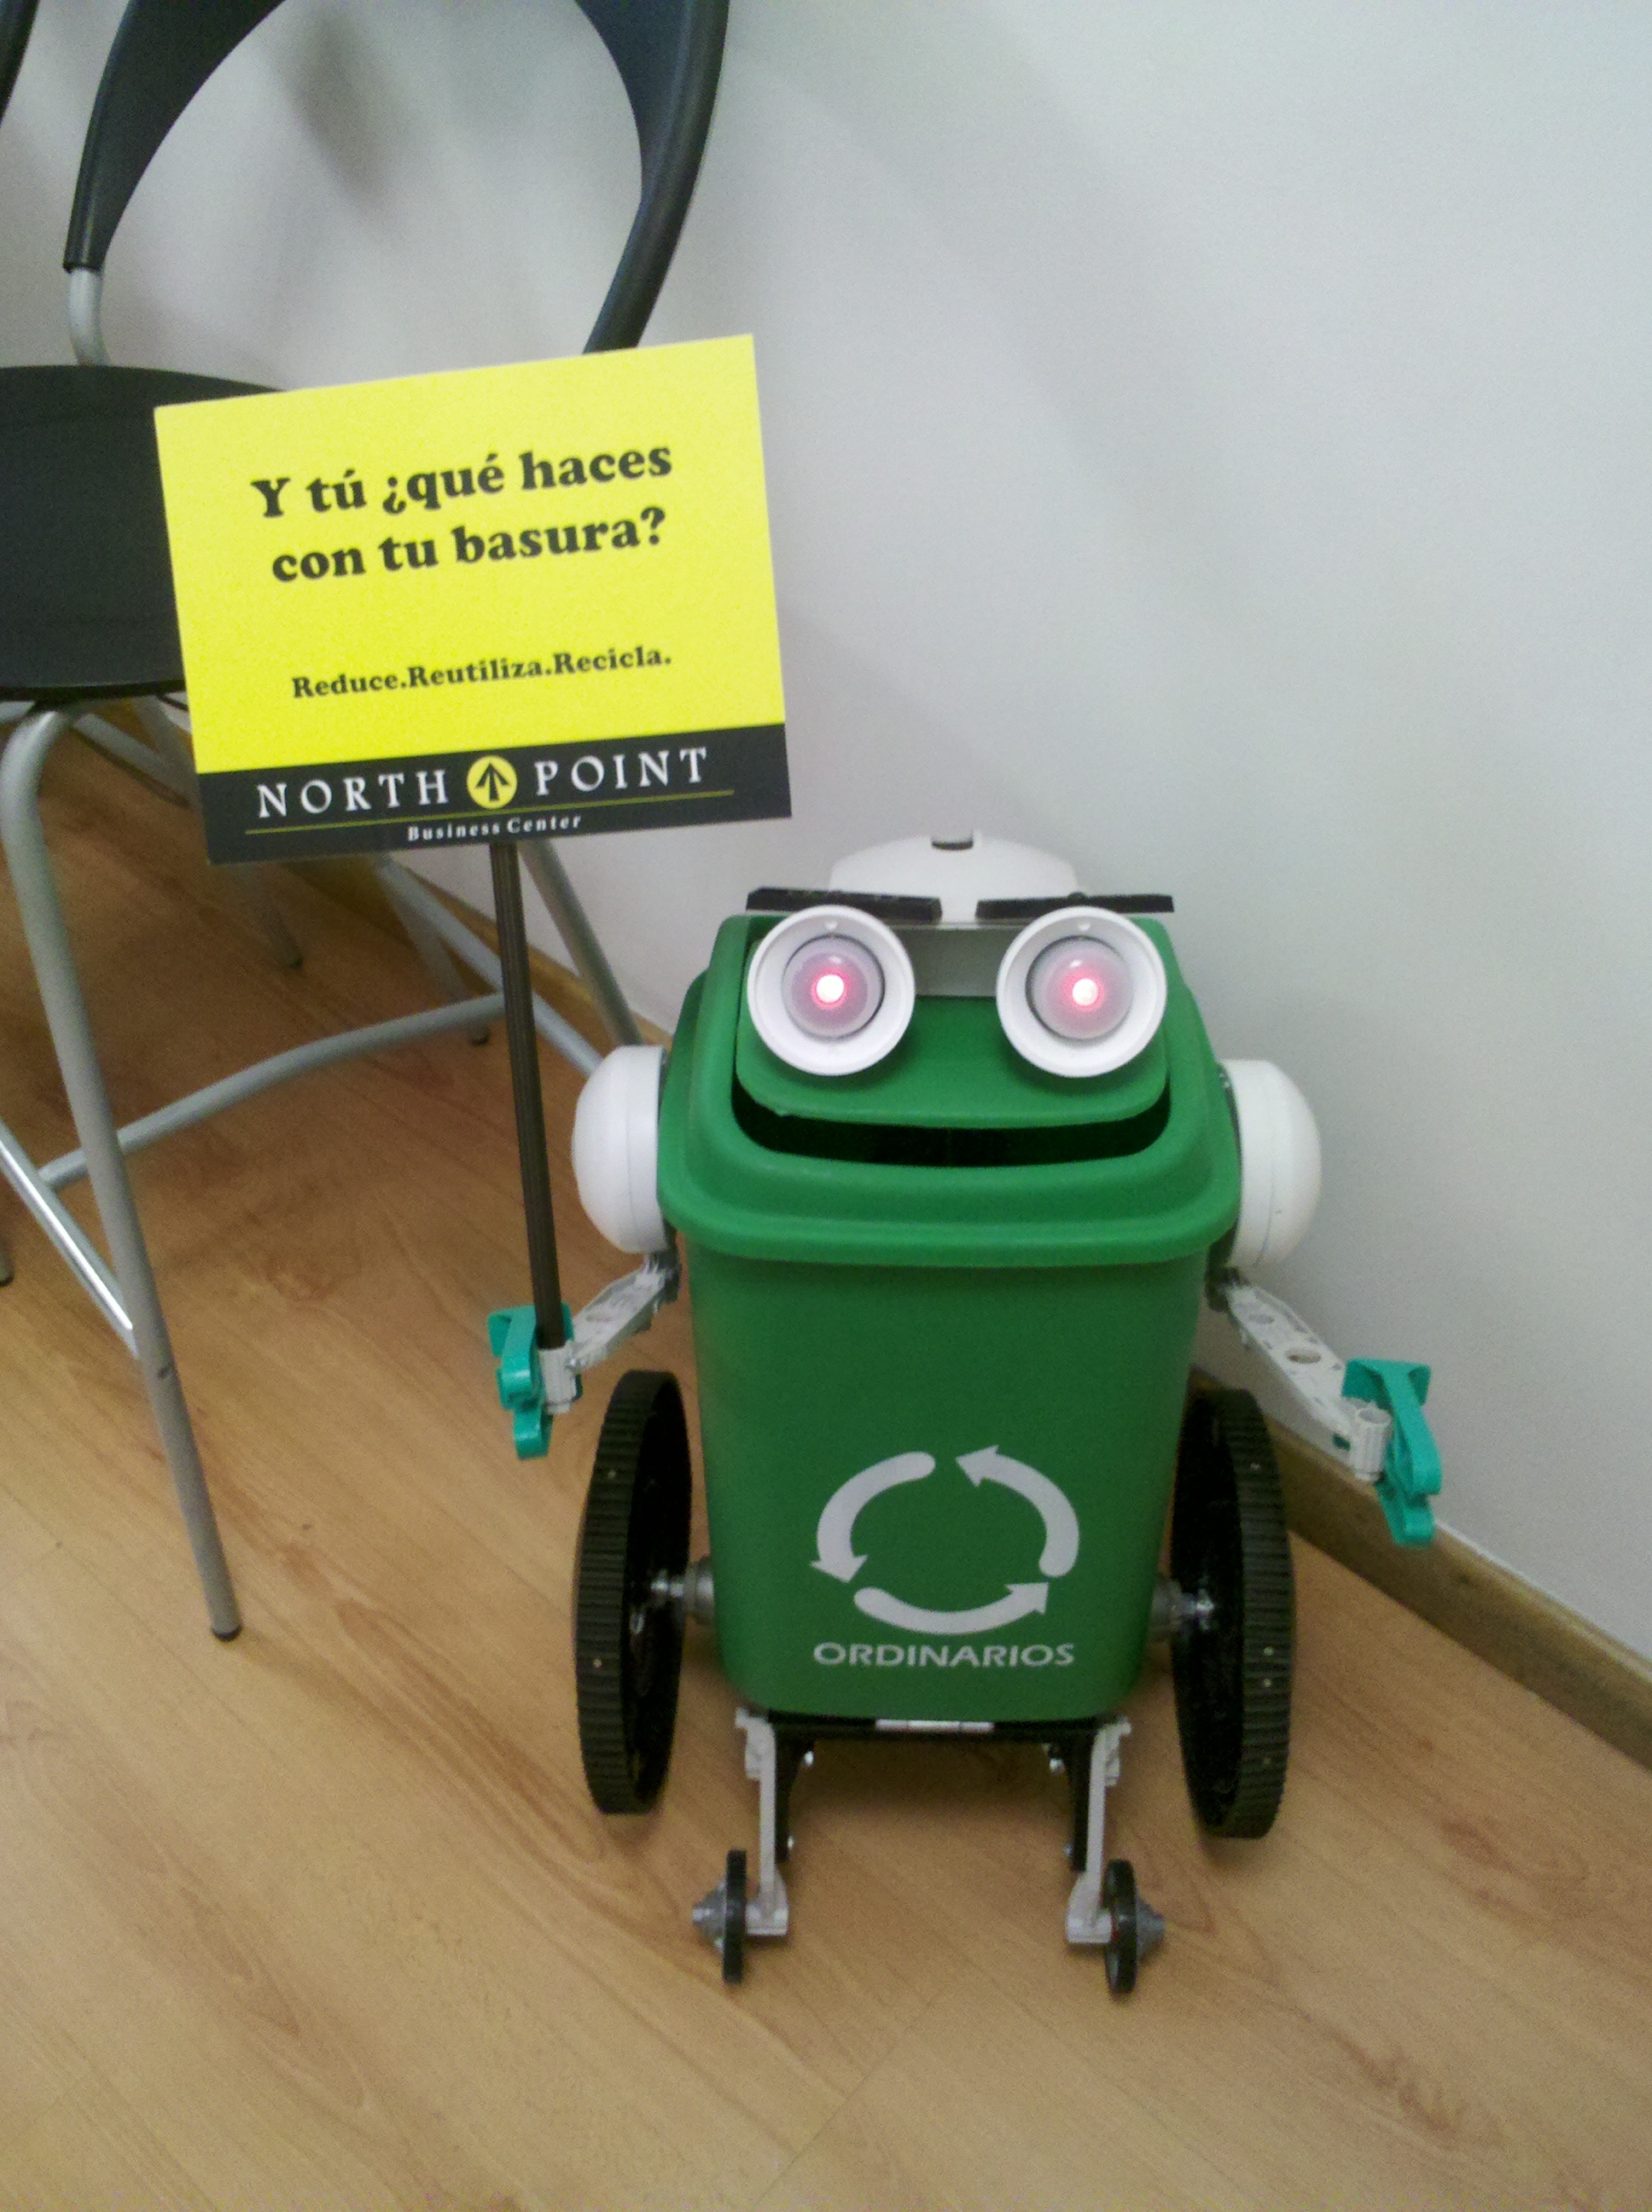 Make a 3R (Reduce, Reuse, Recycle) Campaign for your office (with a R/C robot and junkbots)